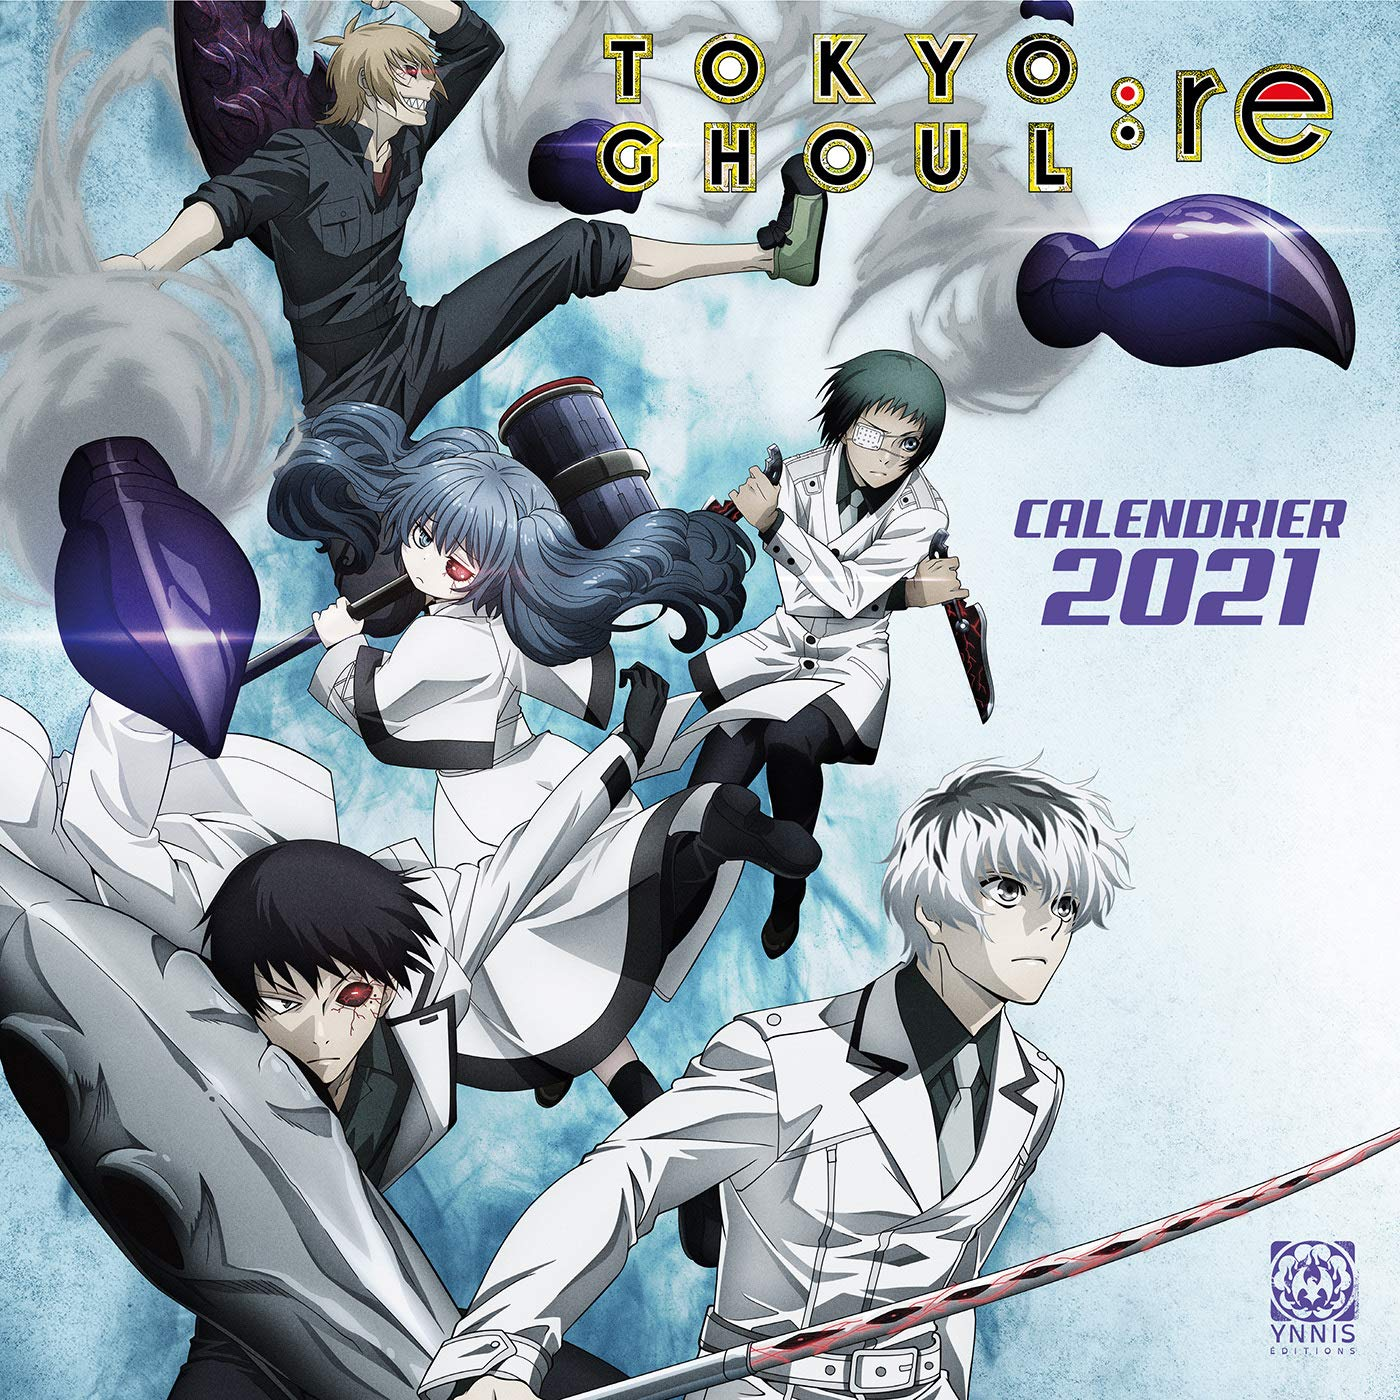 Calendrier 2021 Tokyo Ghoul:re (French Edition): 9782376971610